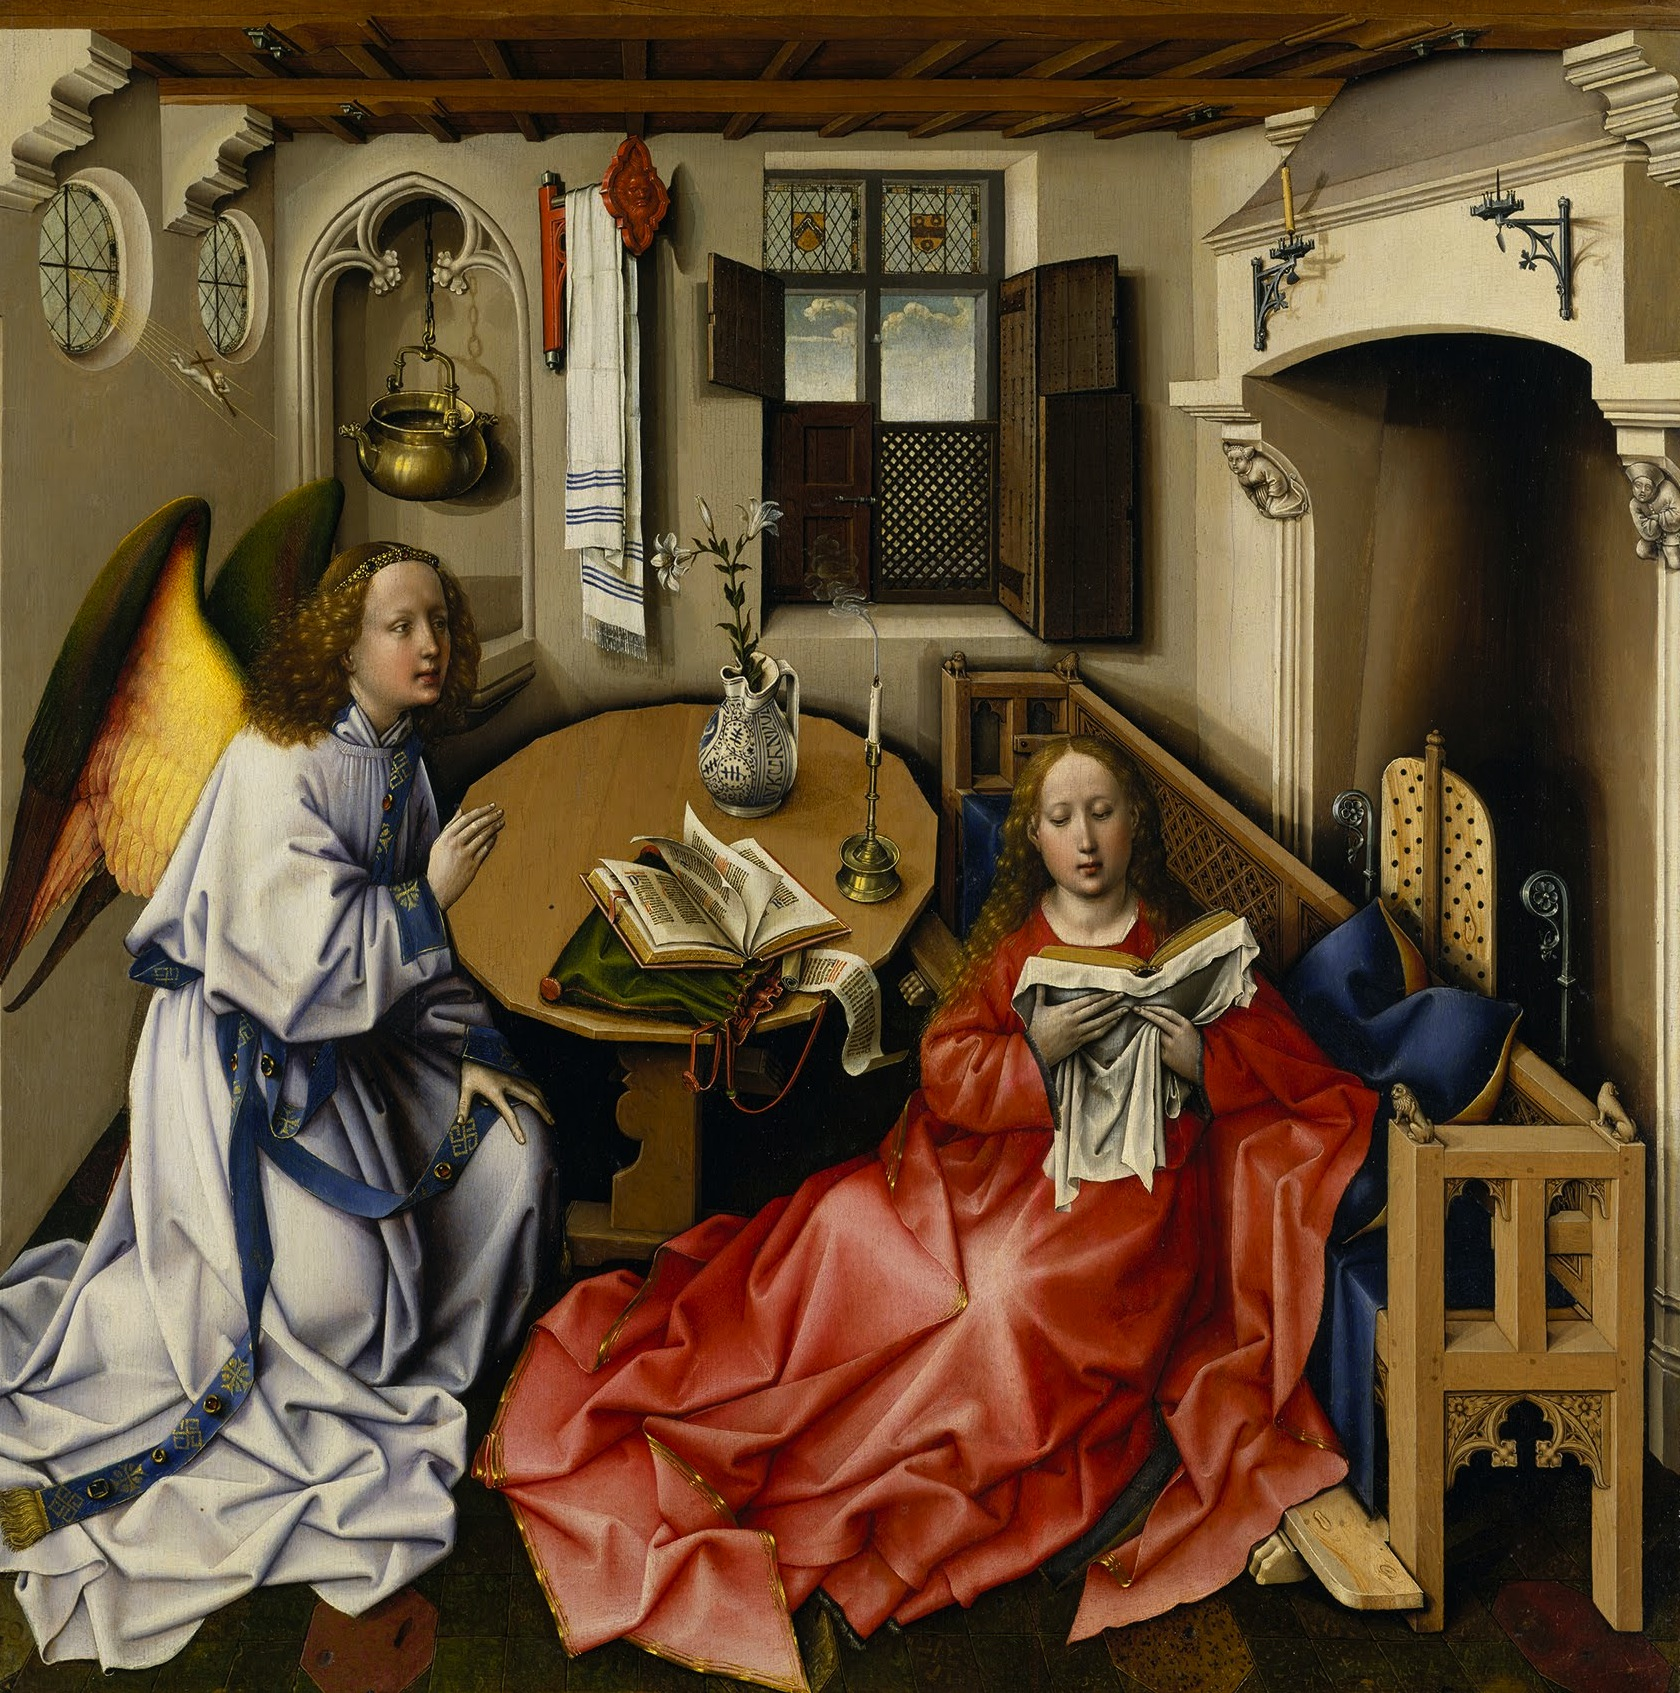 https://upload.wikimedia.org/wikipedia/commons/c/cf/Robert_Campin_-_Triptych_with_the_Annunciation%2C_known_as_the_%22Merode_Altarpiece%22_-_Google_Art_Project_crop.jpg